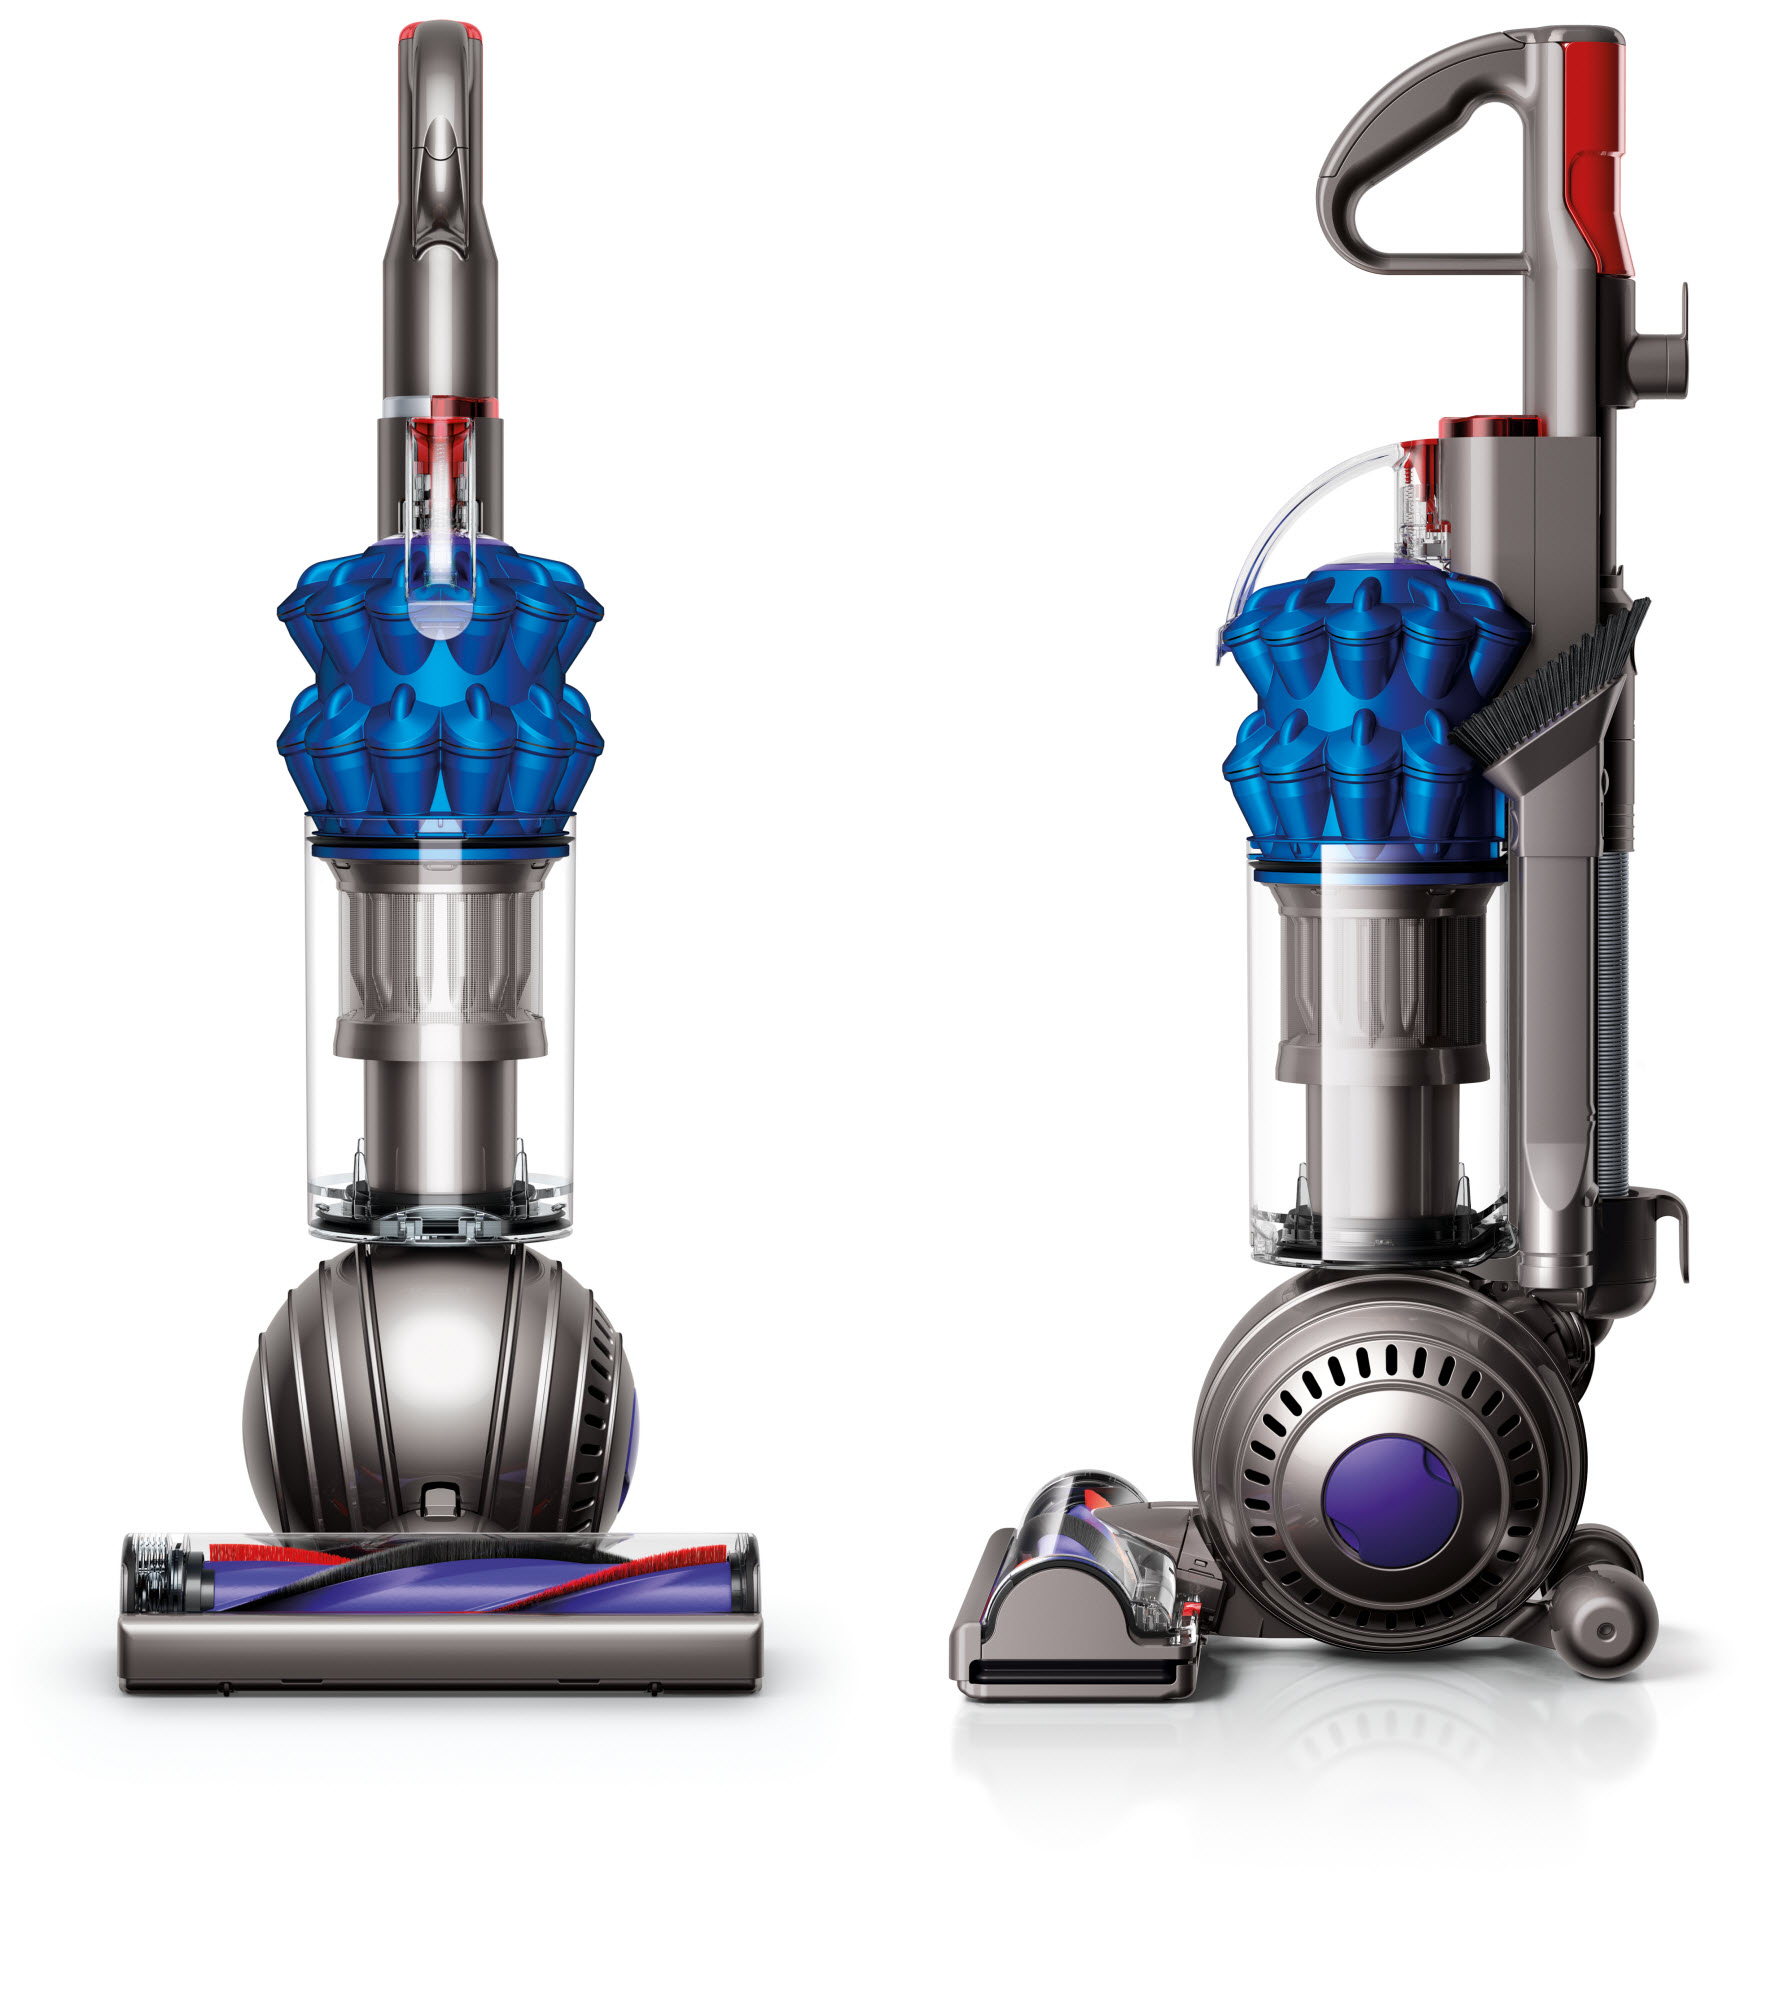 Dyson DC50 Ball Compact Allergy HEPA Upright Vacuum (Blue) + $15 Gift Card